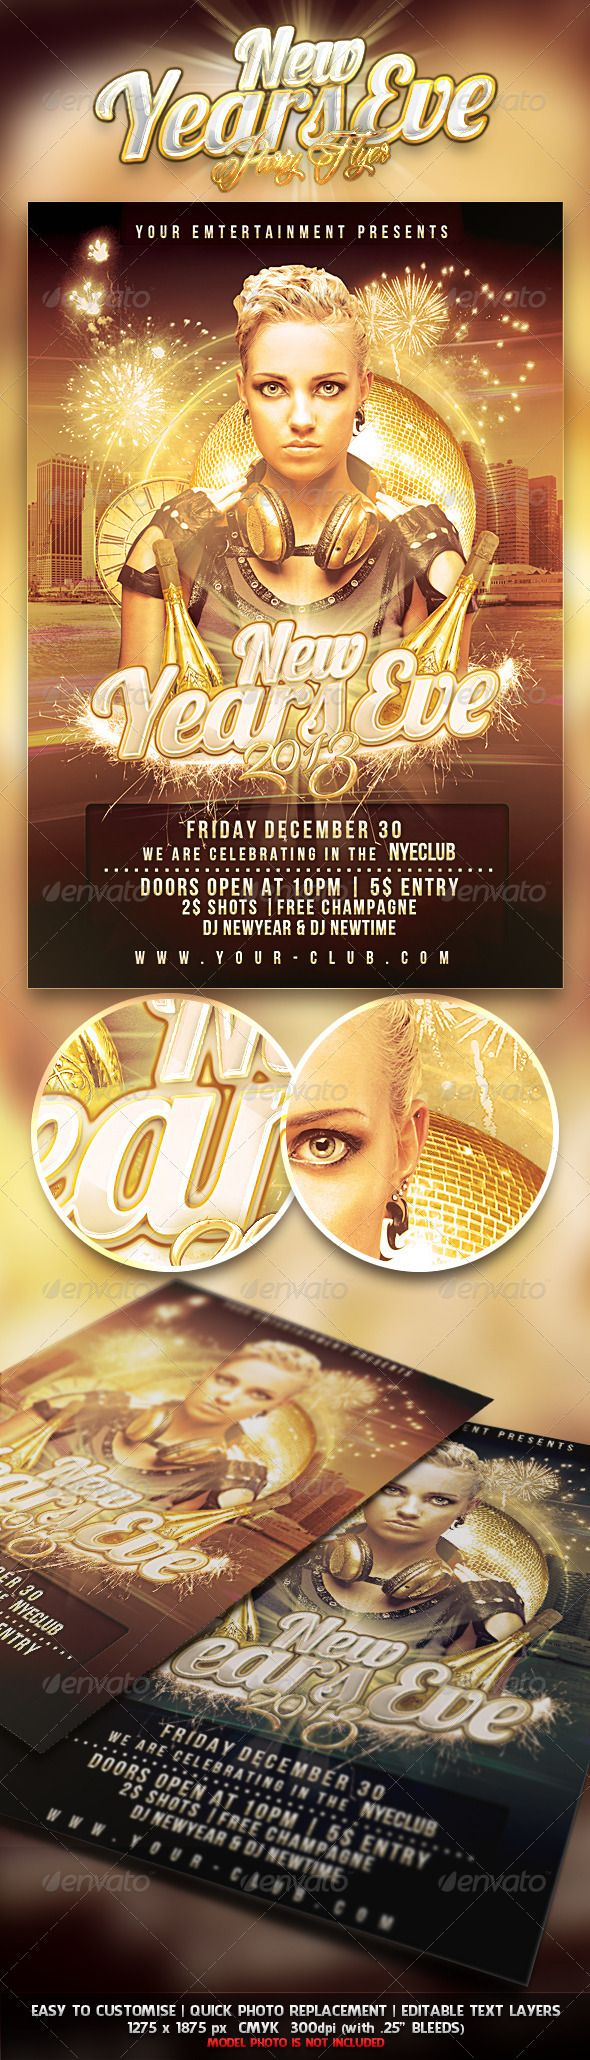 new years eve party a luxury looking flyer to promote your glamorous event you can promote your party